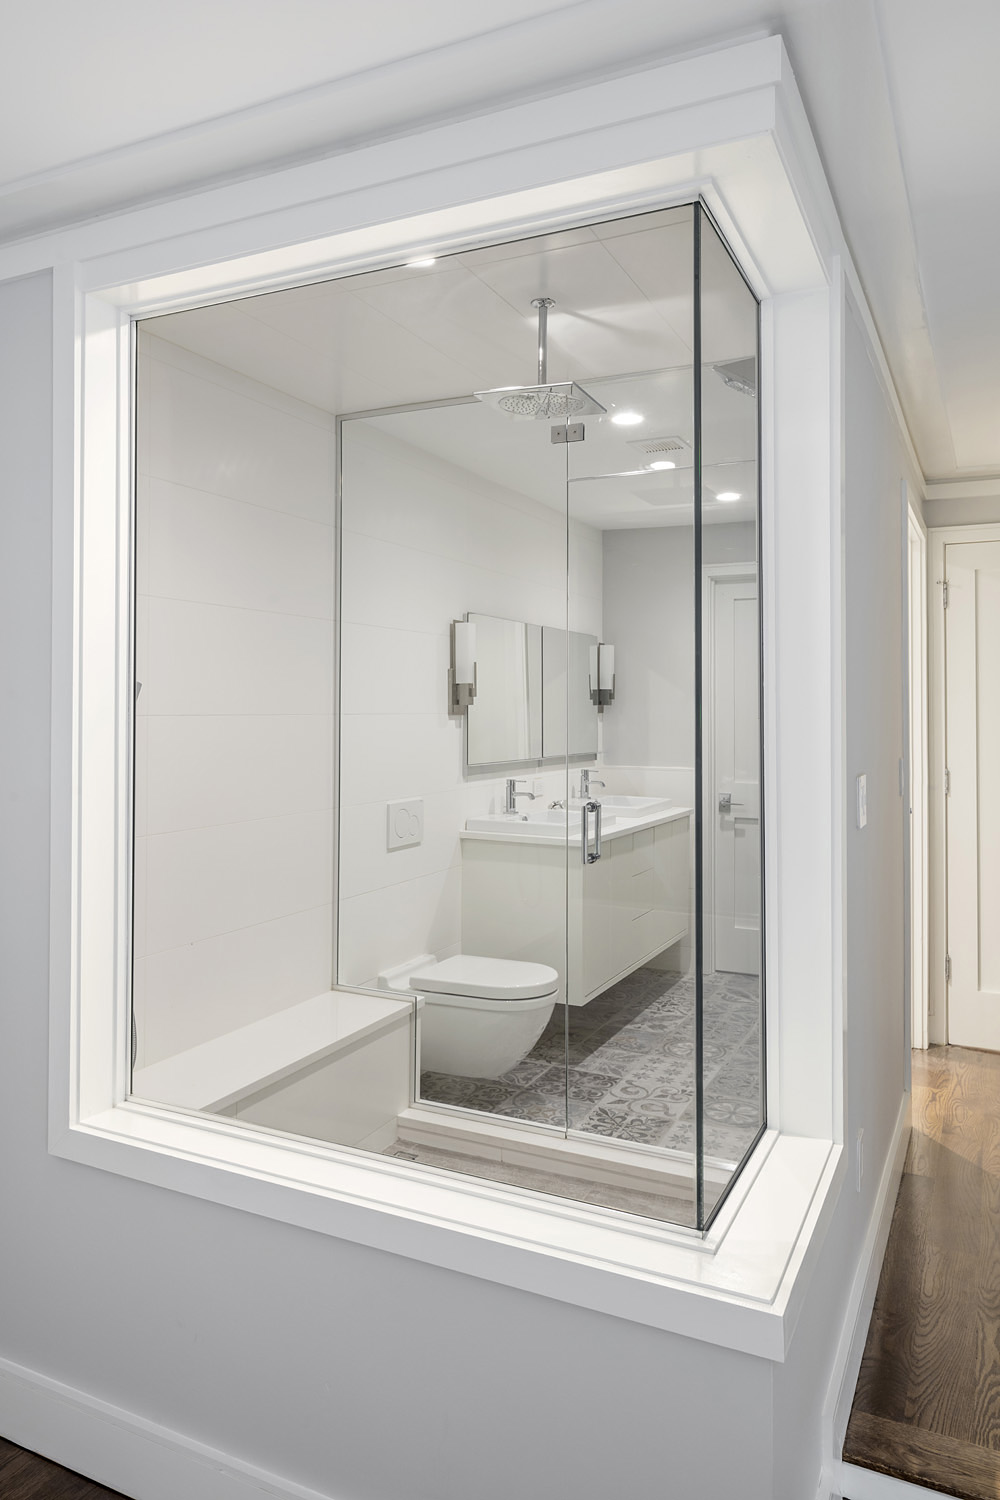 1 - Bath Shower.jpg